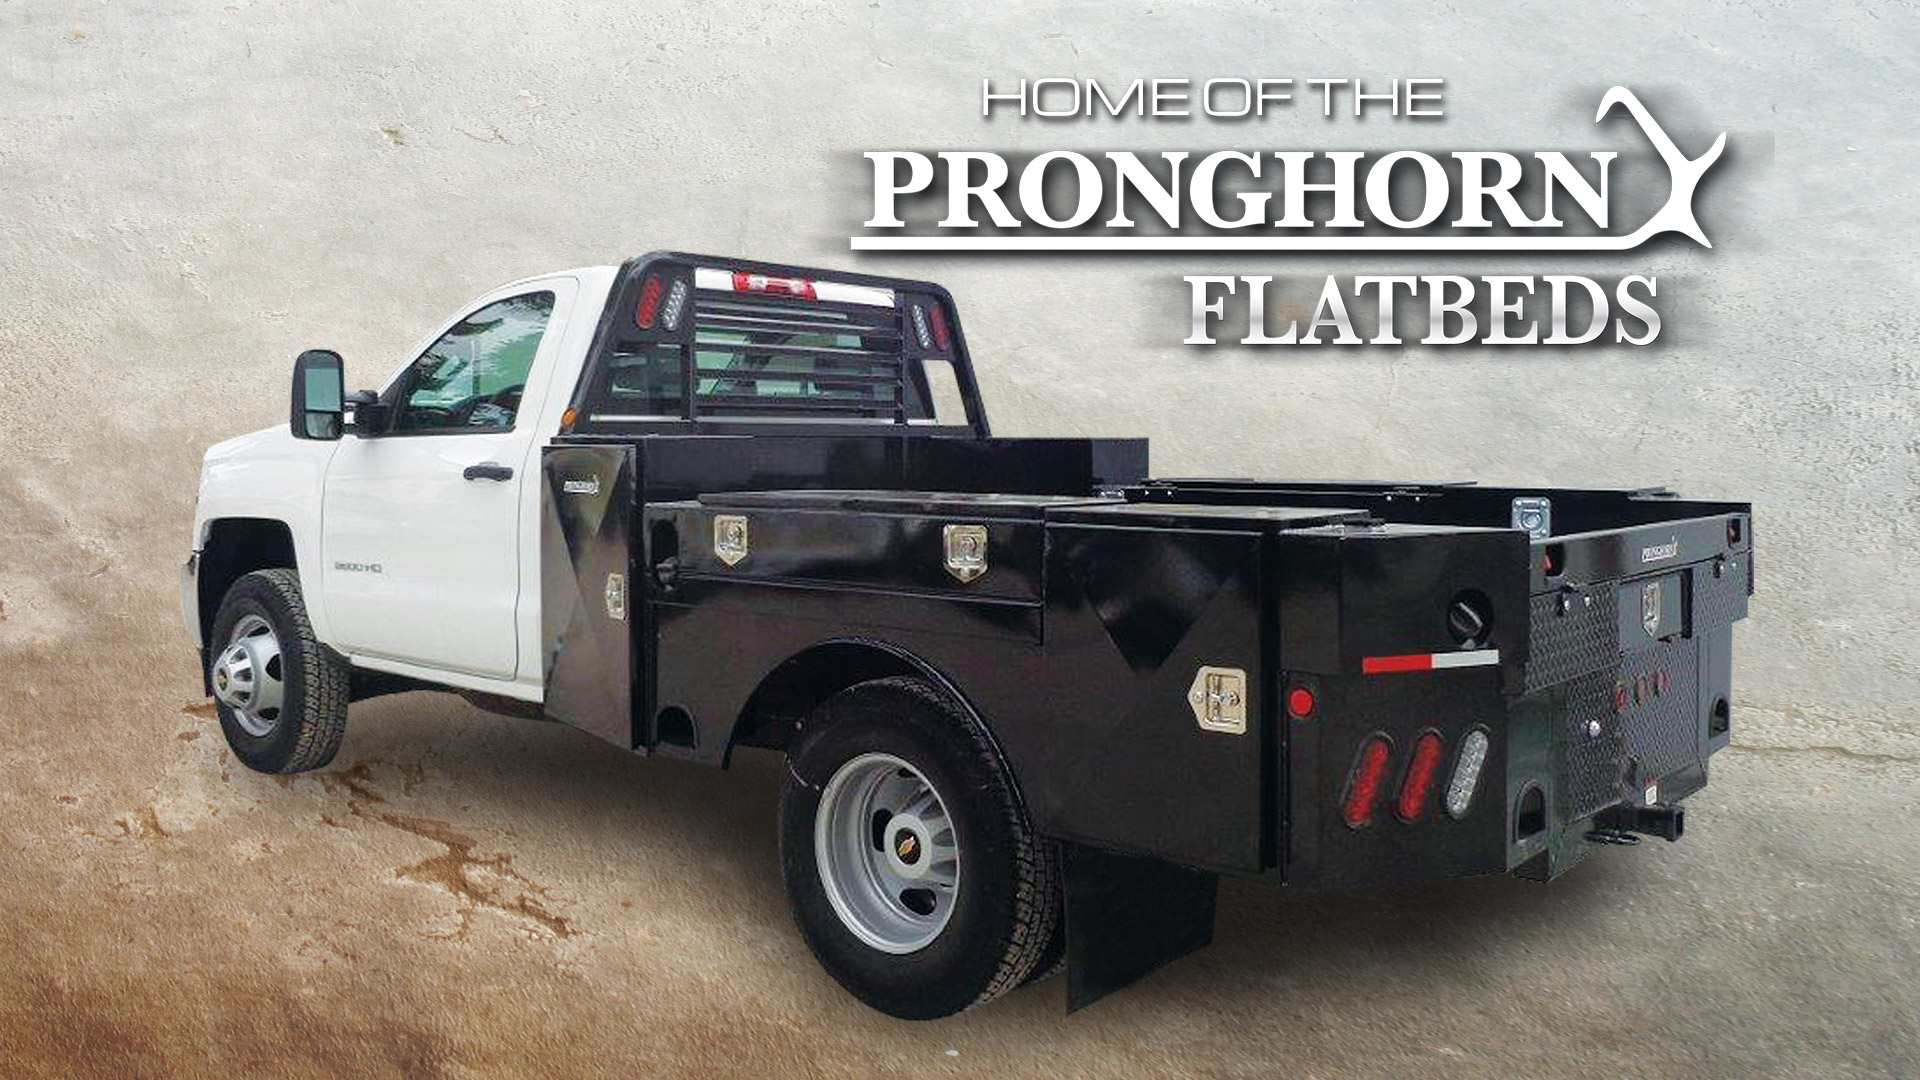 Pronghorn Flatbeds – Quality Truck Beds from BGSales. on box truck ford, box truck dimensions, boom truck wiring diagram, food truck wiring diagram, mini truck wiring diagram, box truck chassis, bucket truck wiring diagram, box truck parts diagram, box truck interior diagram, box truck engine, box truck diagram diagram, box truck safety diagram, refrigerated truck wiring diagram, box truck heater, commercial truck wiring diagram, fire truck wiring diagram,